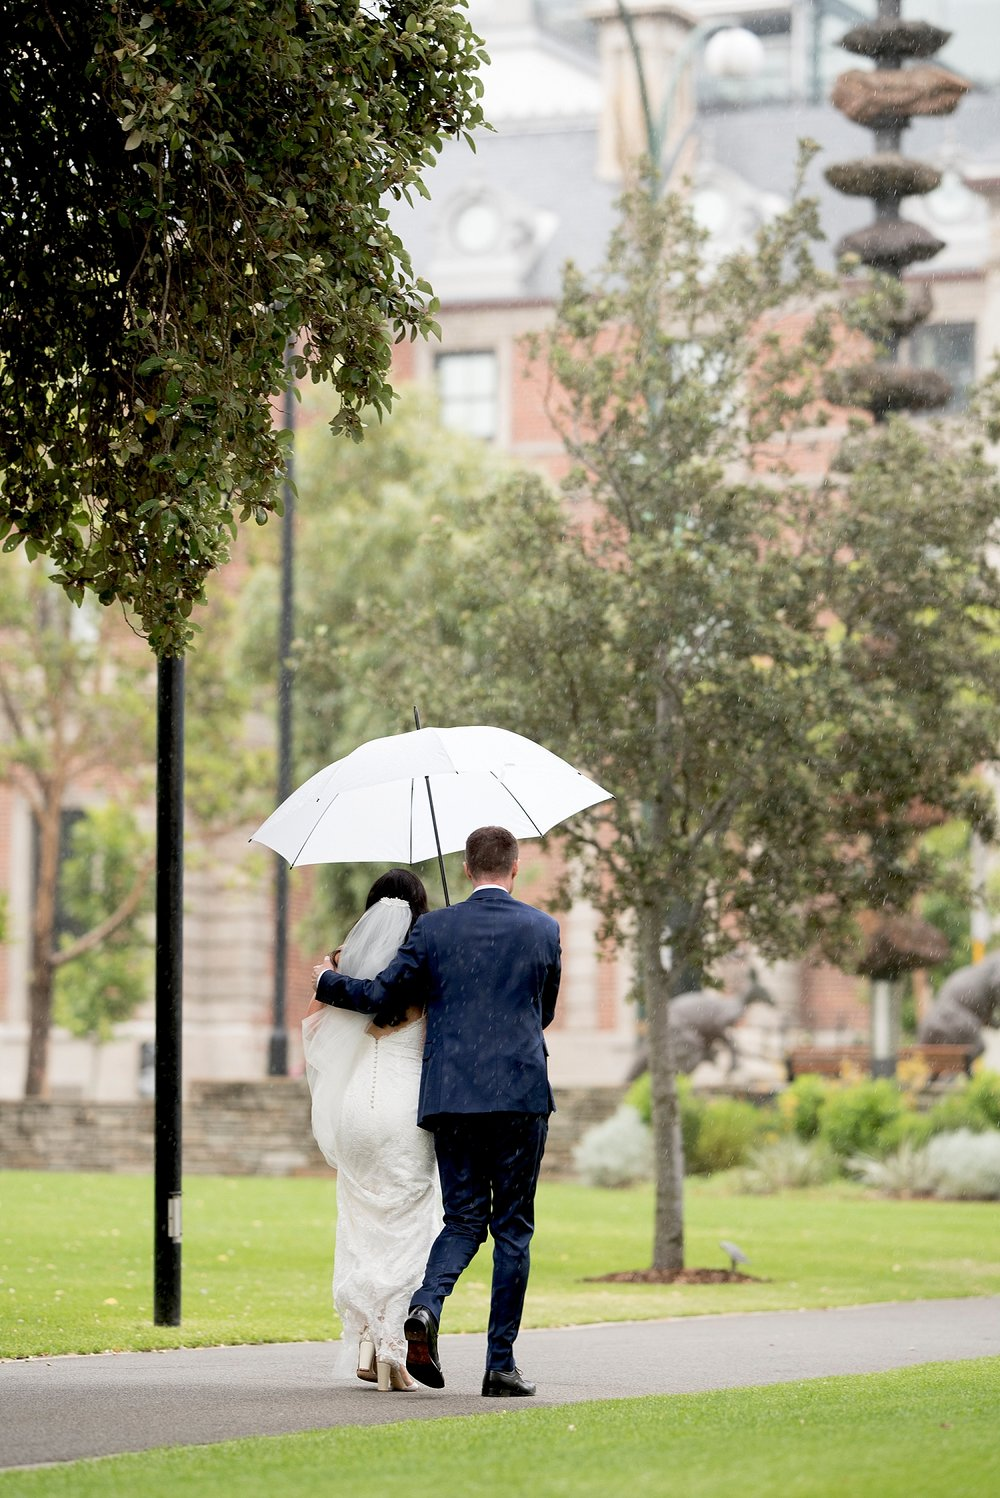 50_Perth rainy wedding umbrellas.jpg